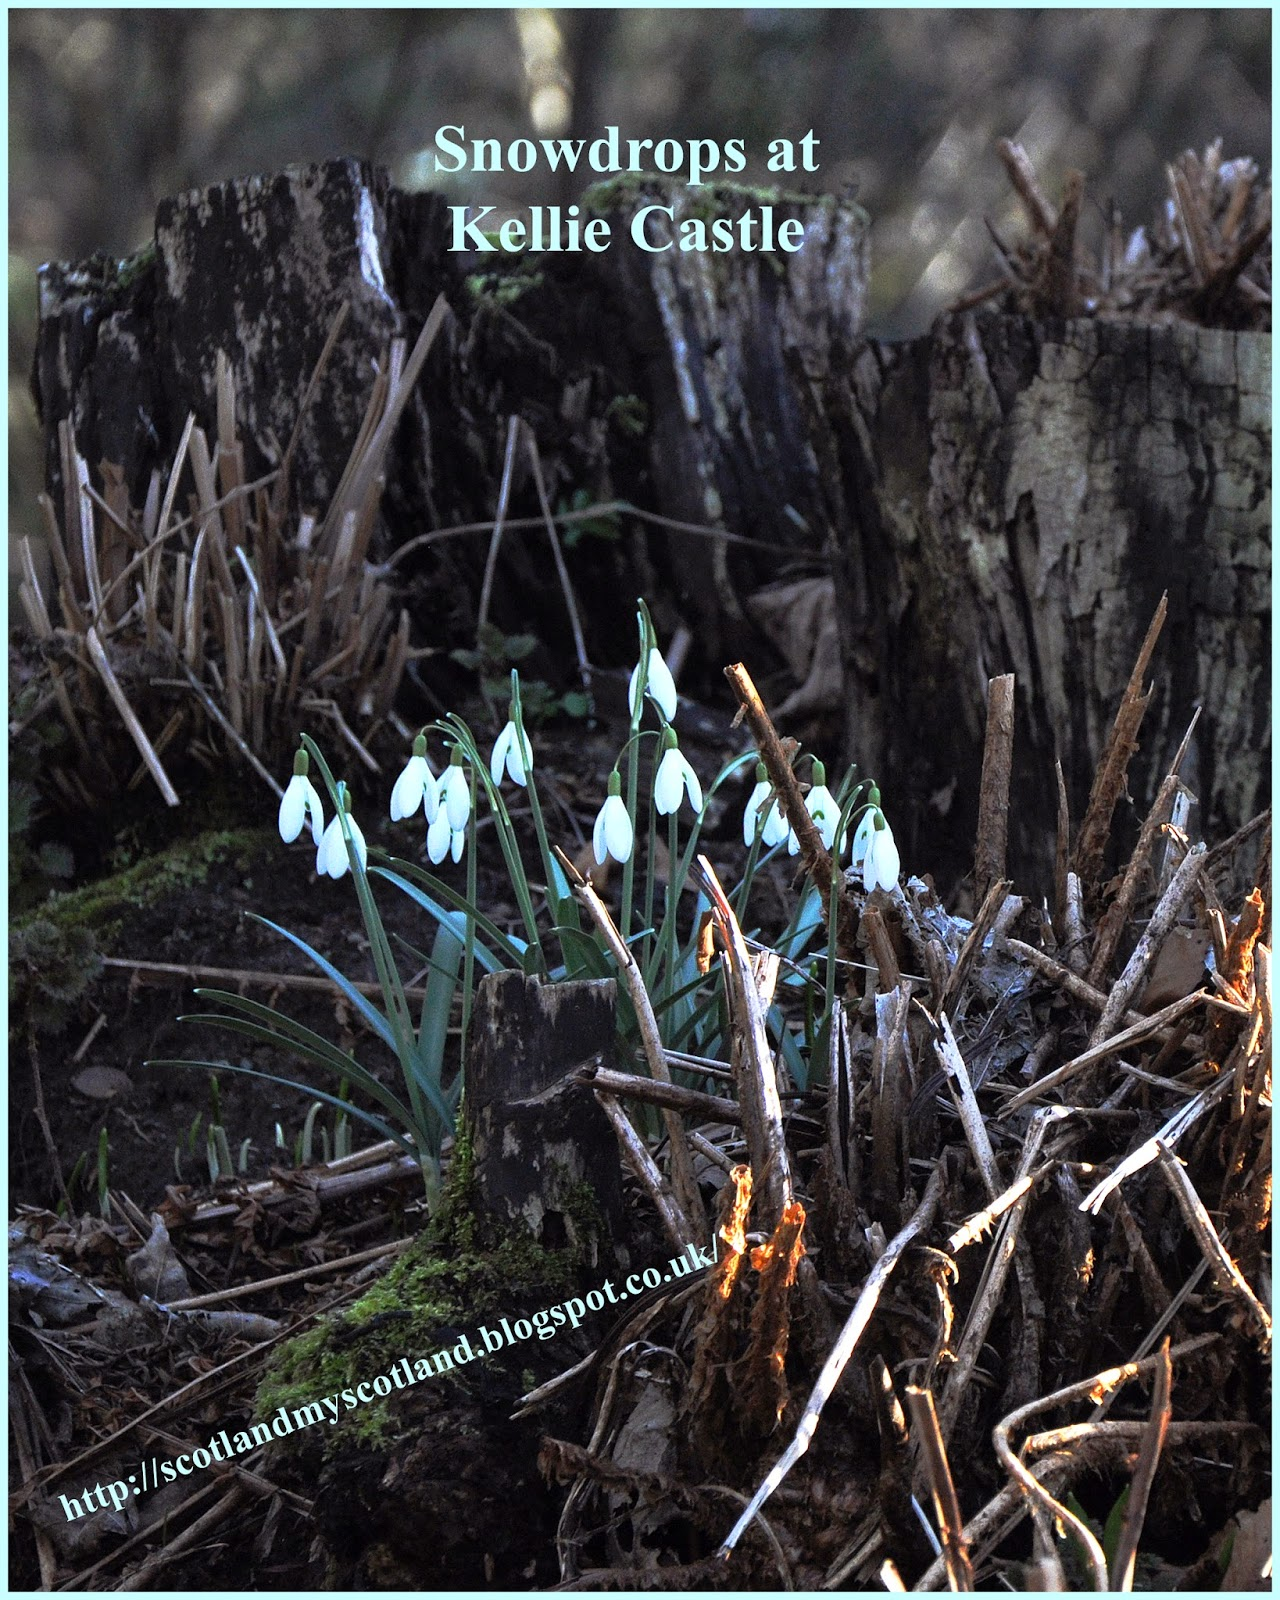 snowdrops on tree stump